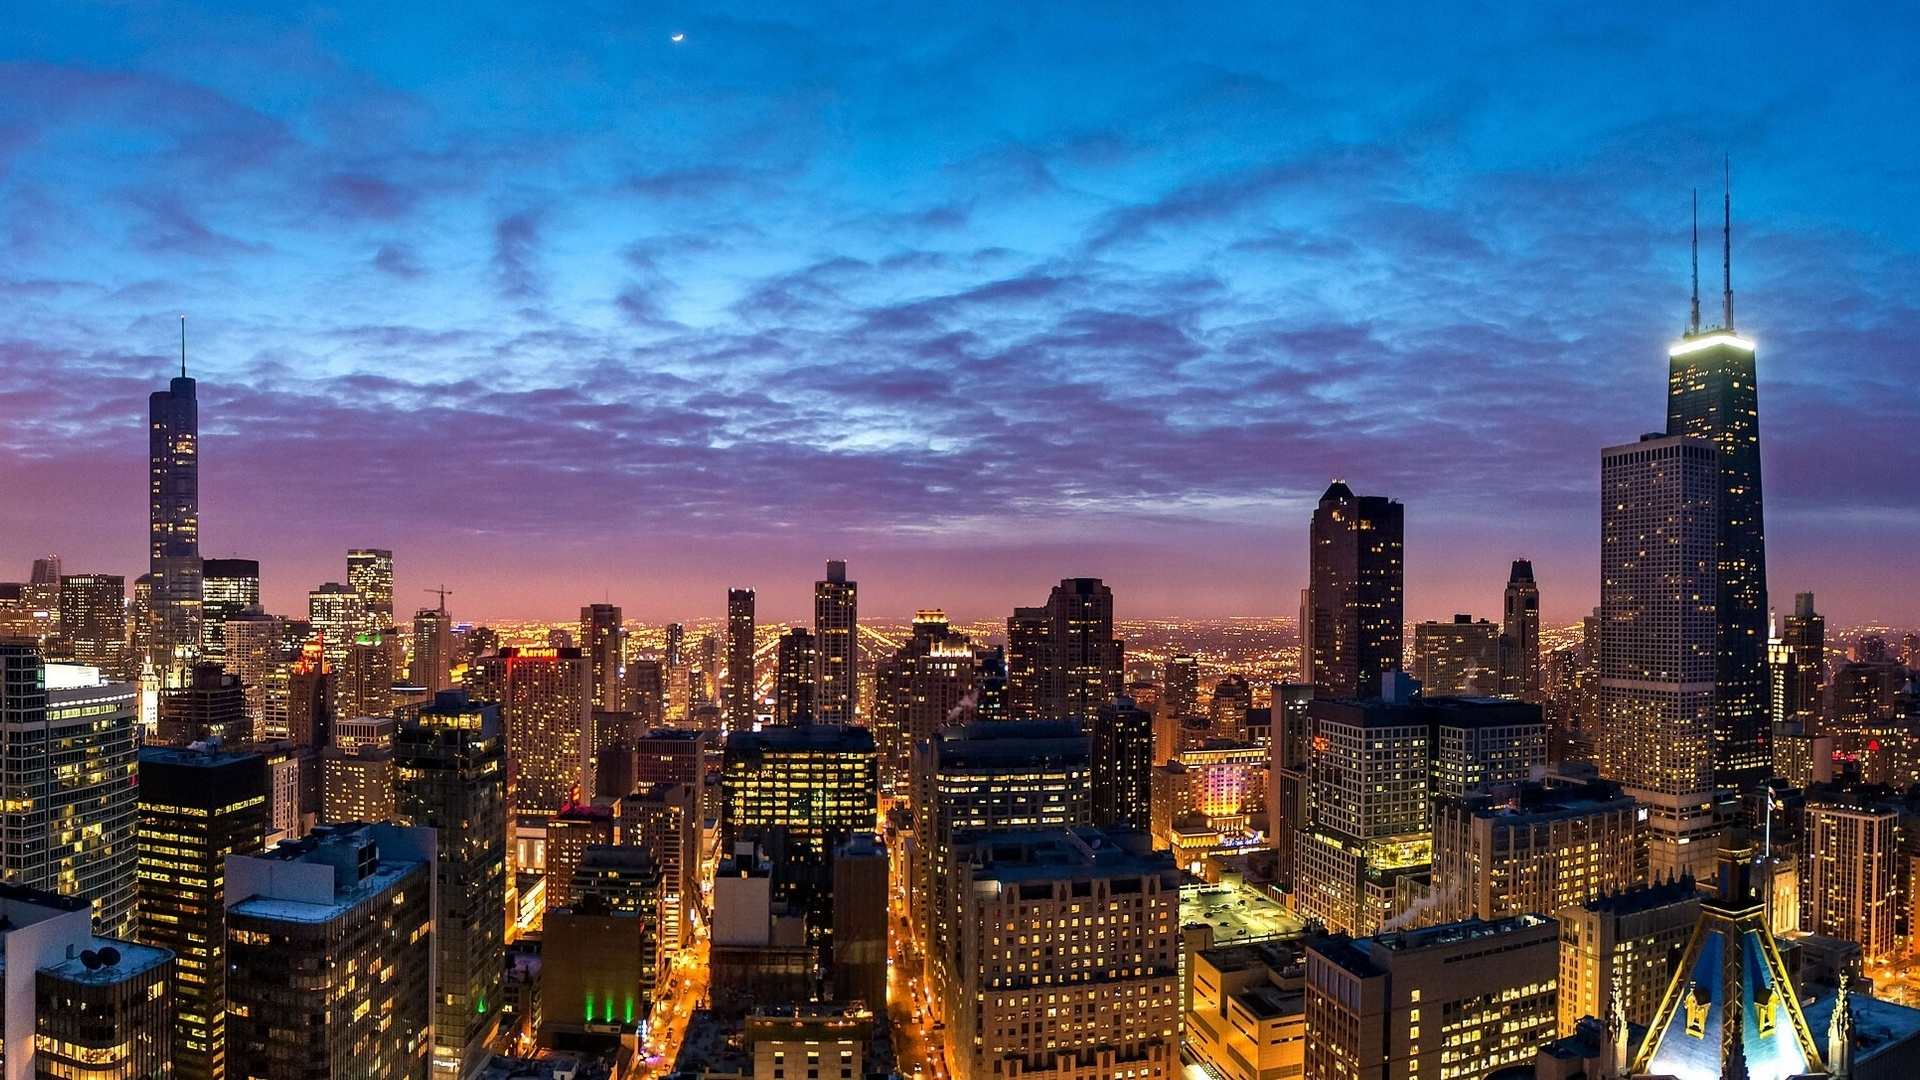 Pin chicago dual monitor wallpaper landscape nature hd for Chicago landscape